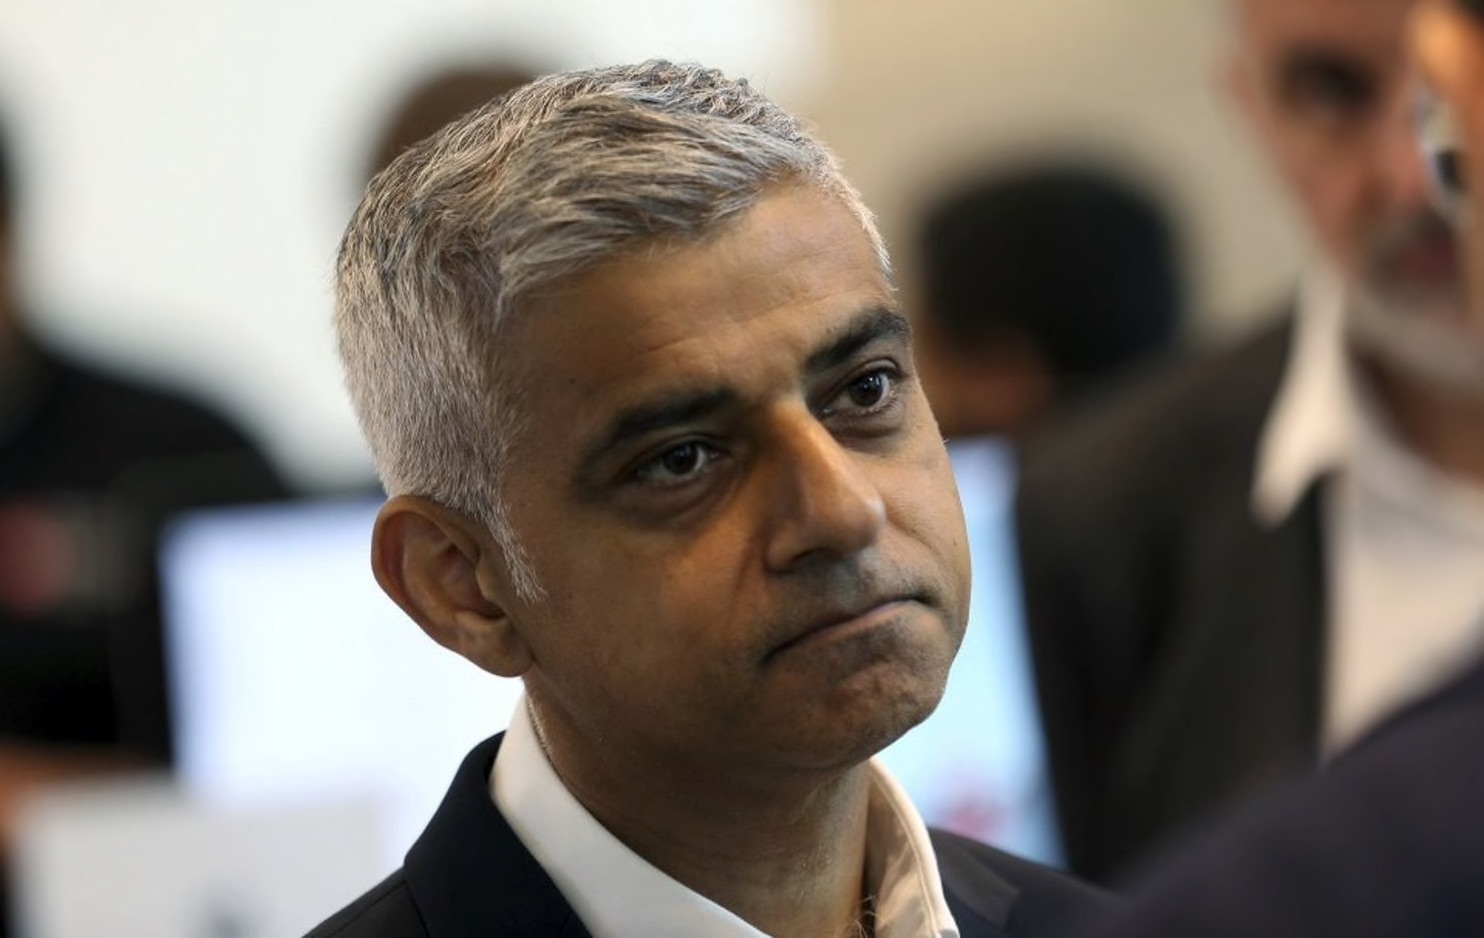 Maryland Mayor Criticized for Calling London's Muslim Mayor a 'Terrorist'